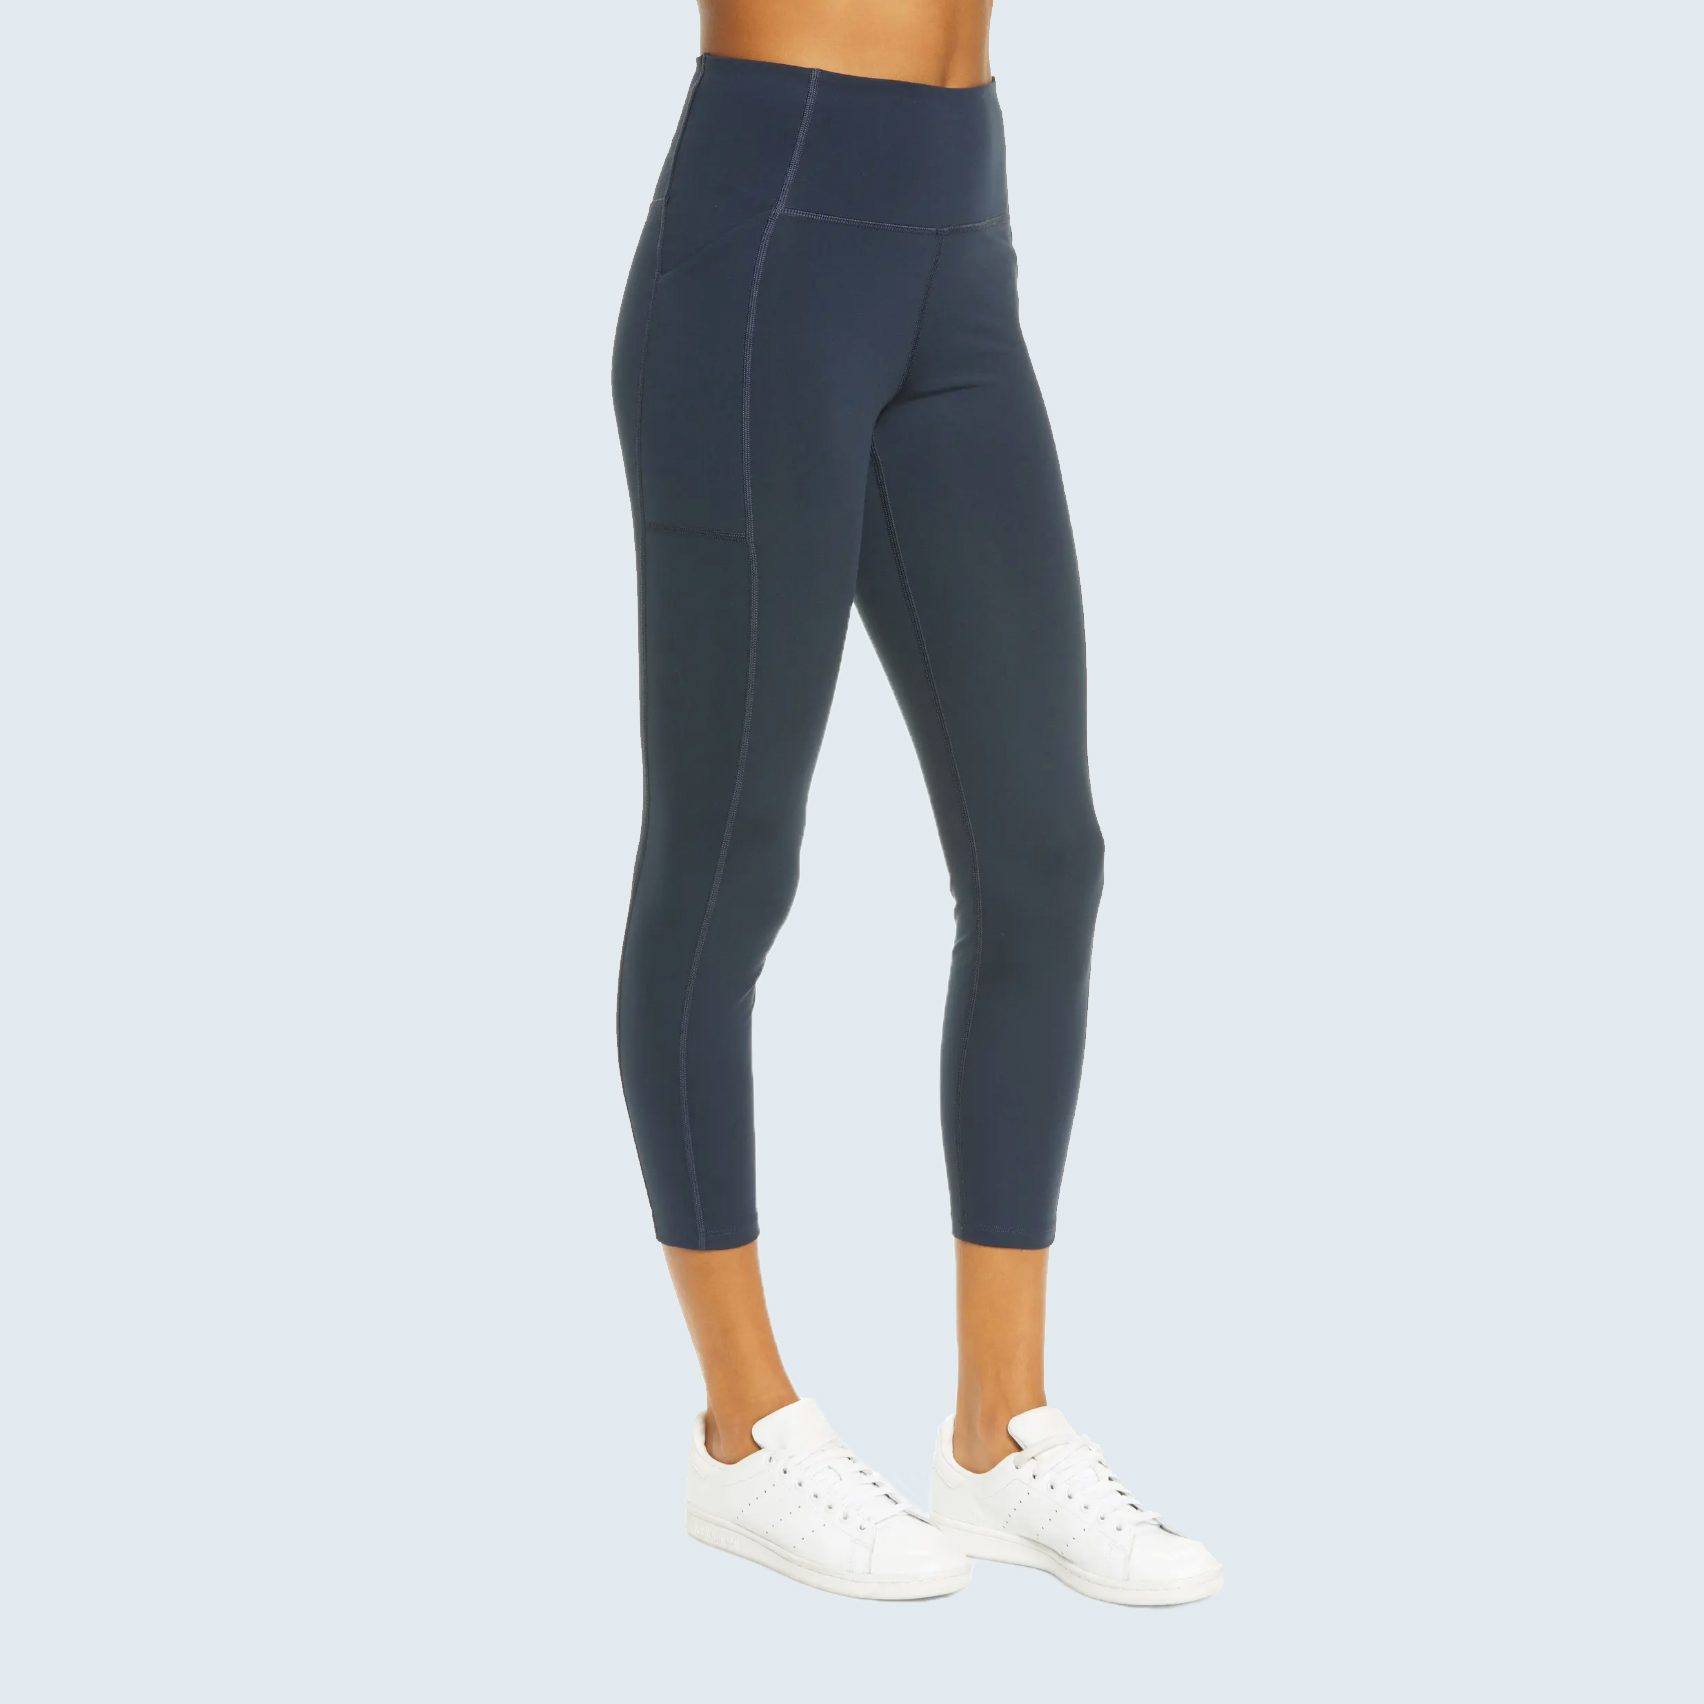 Pocket Crop Leggings from the Girlfriend Collective